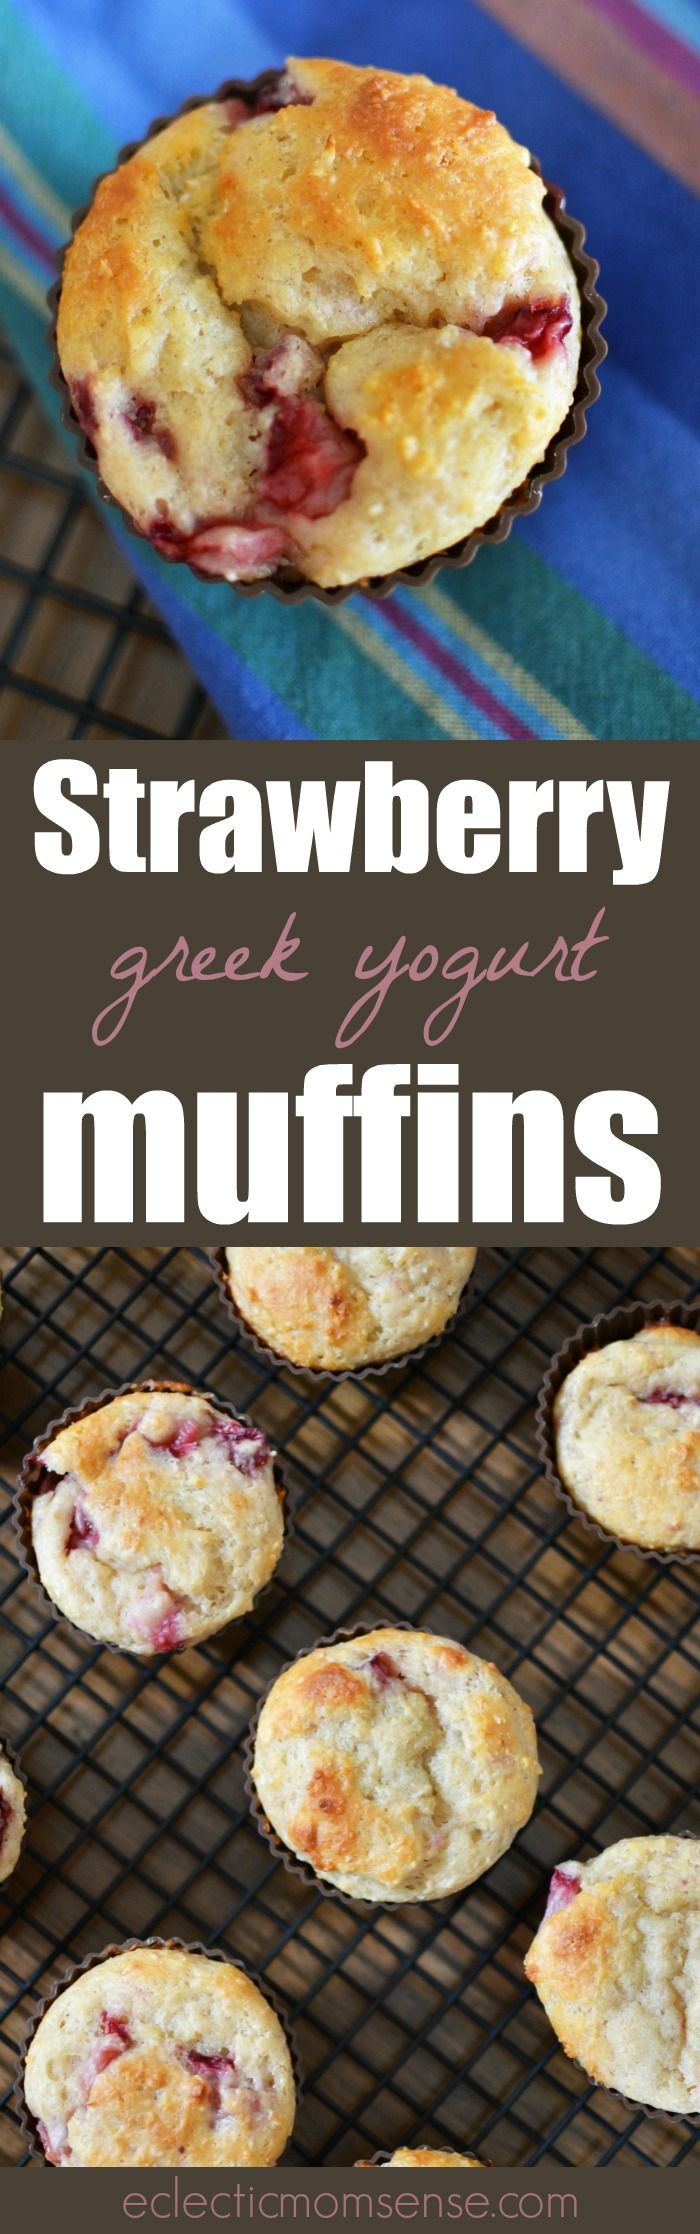 Strawberry Greek Yogurt Muffins | Deliciously moist and packed with protein and strawberries.  #recipe